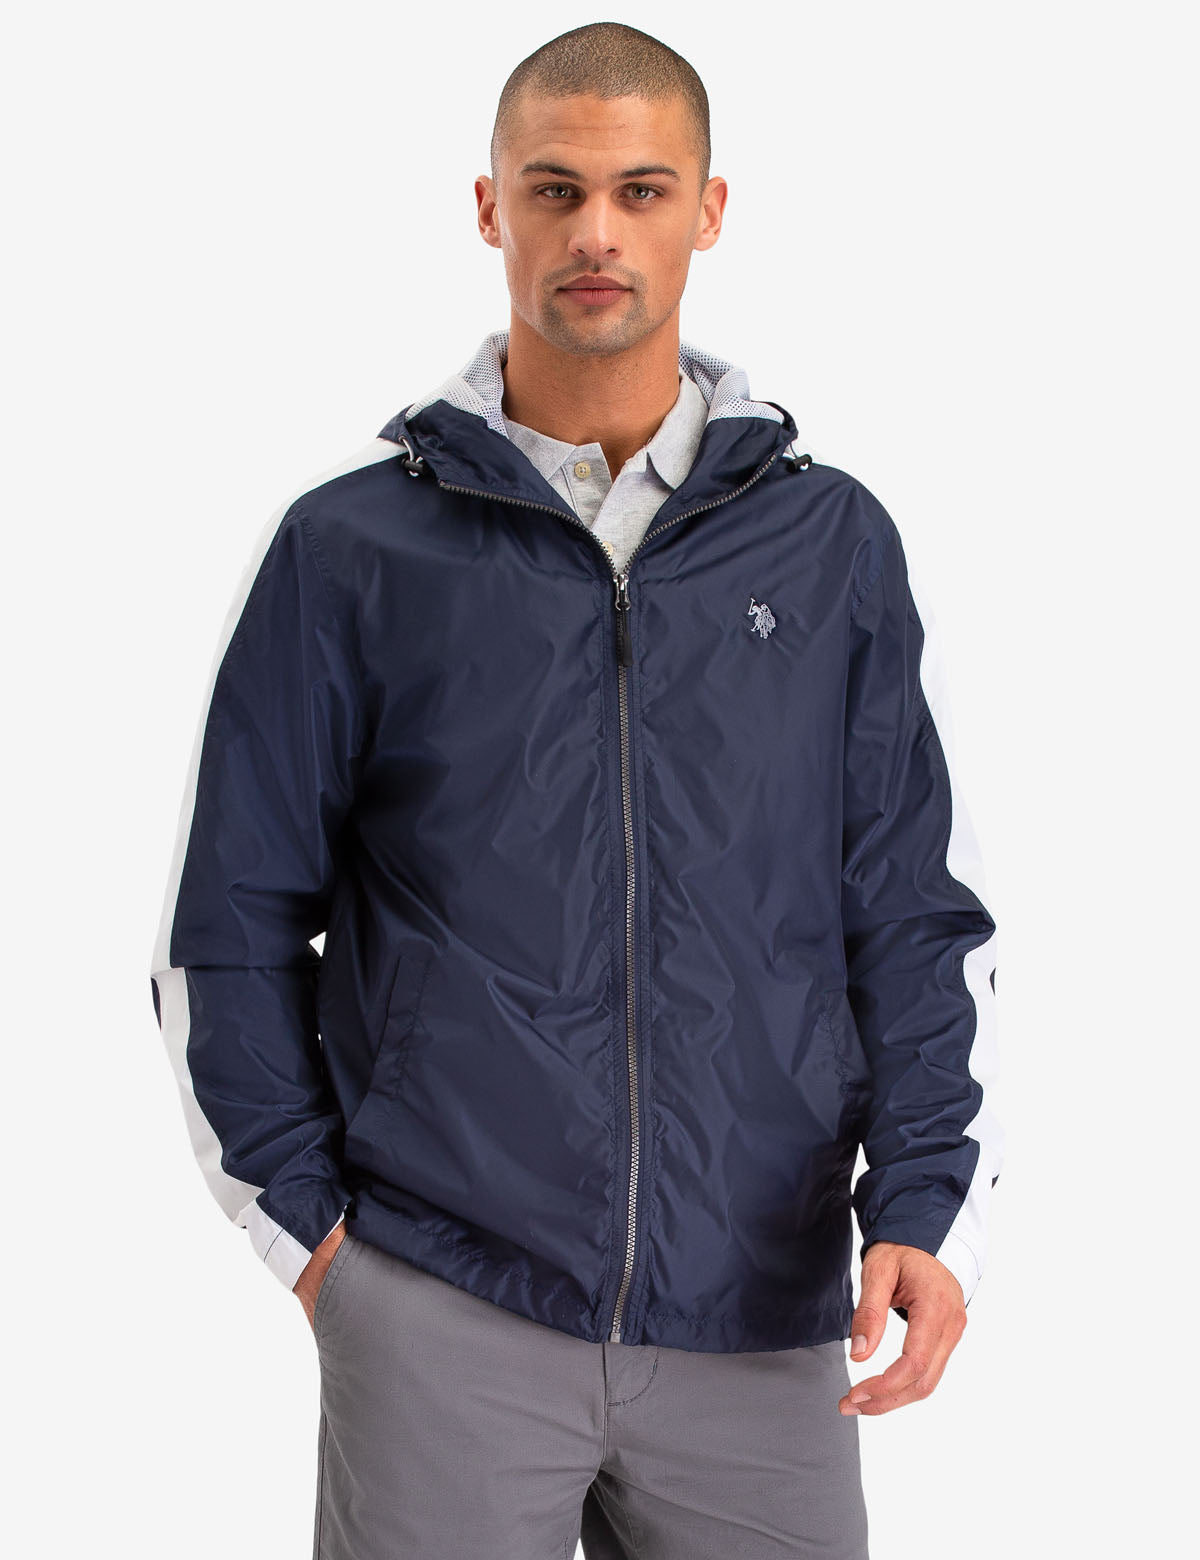 SIDE STRIPE WINDBREAKER JACKET - U.S. Polo Assn.